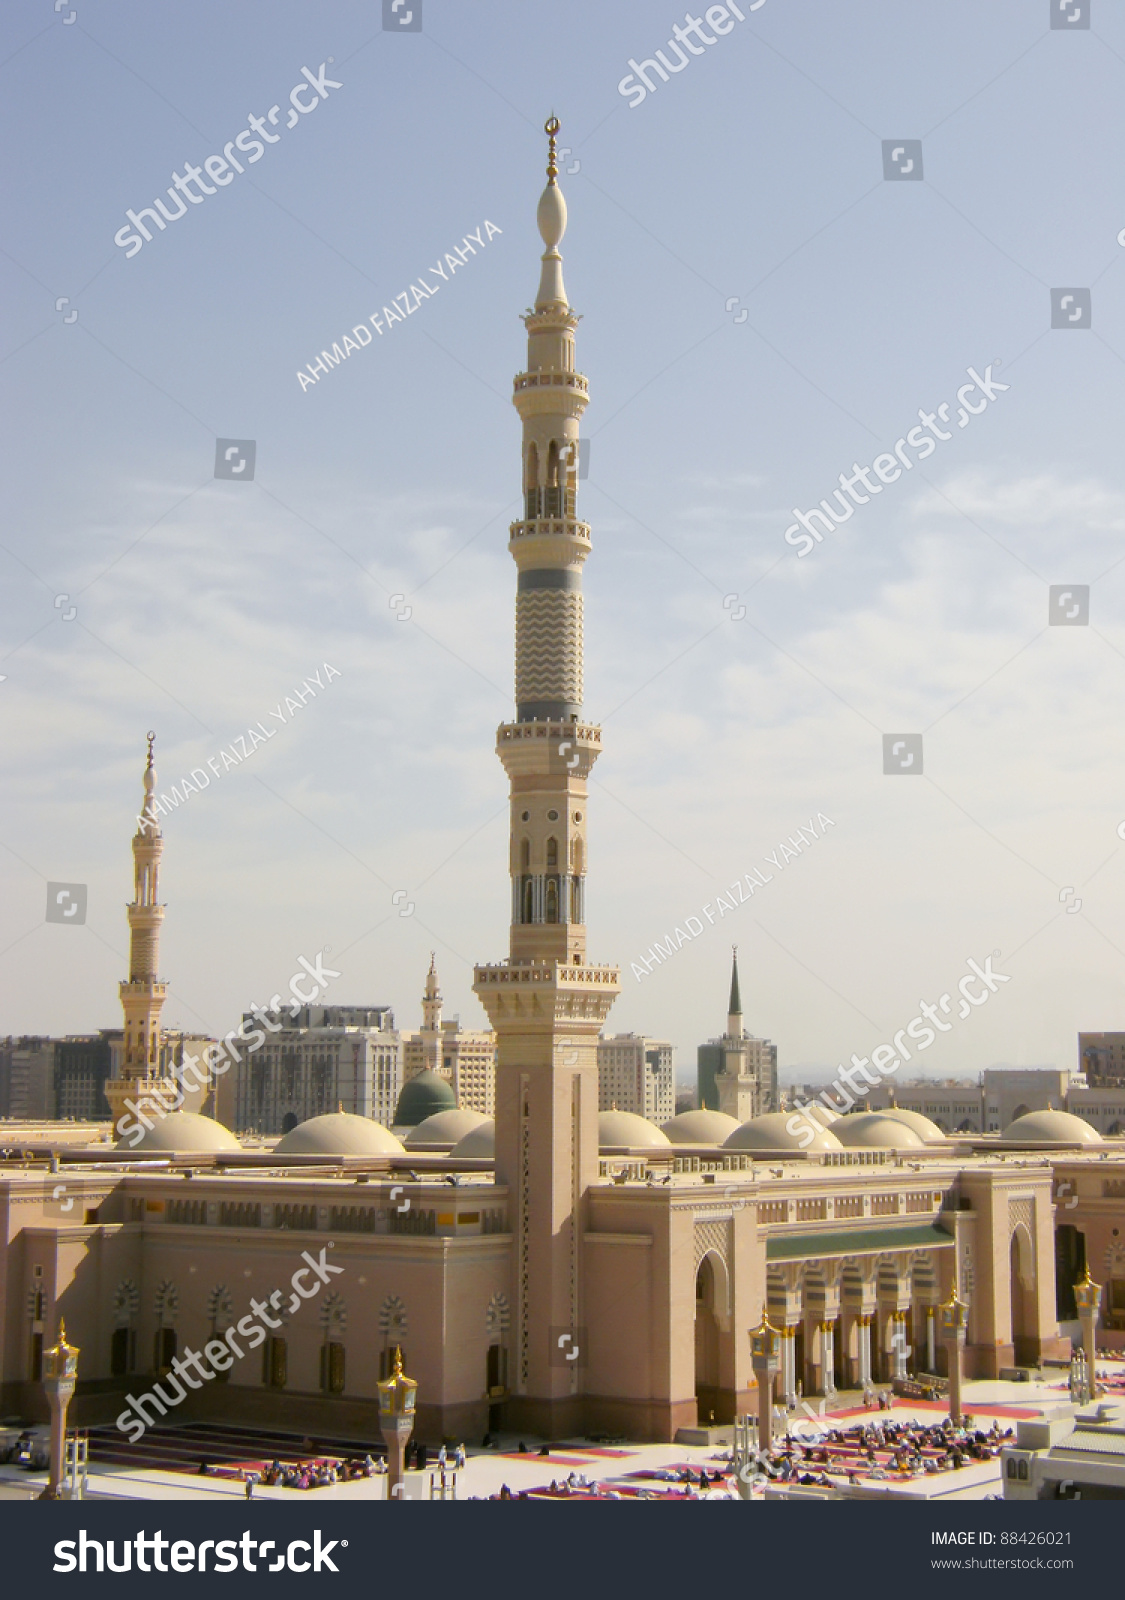 Masjid Al Nabawi Nabawi Mosque Mosque Stock Photo 88426021 ...